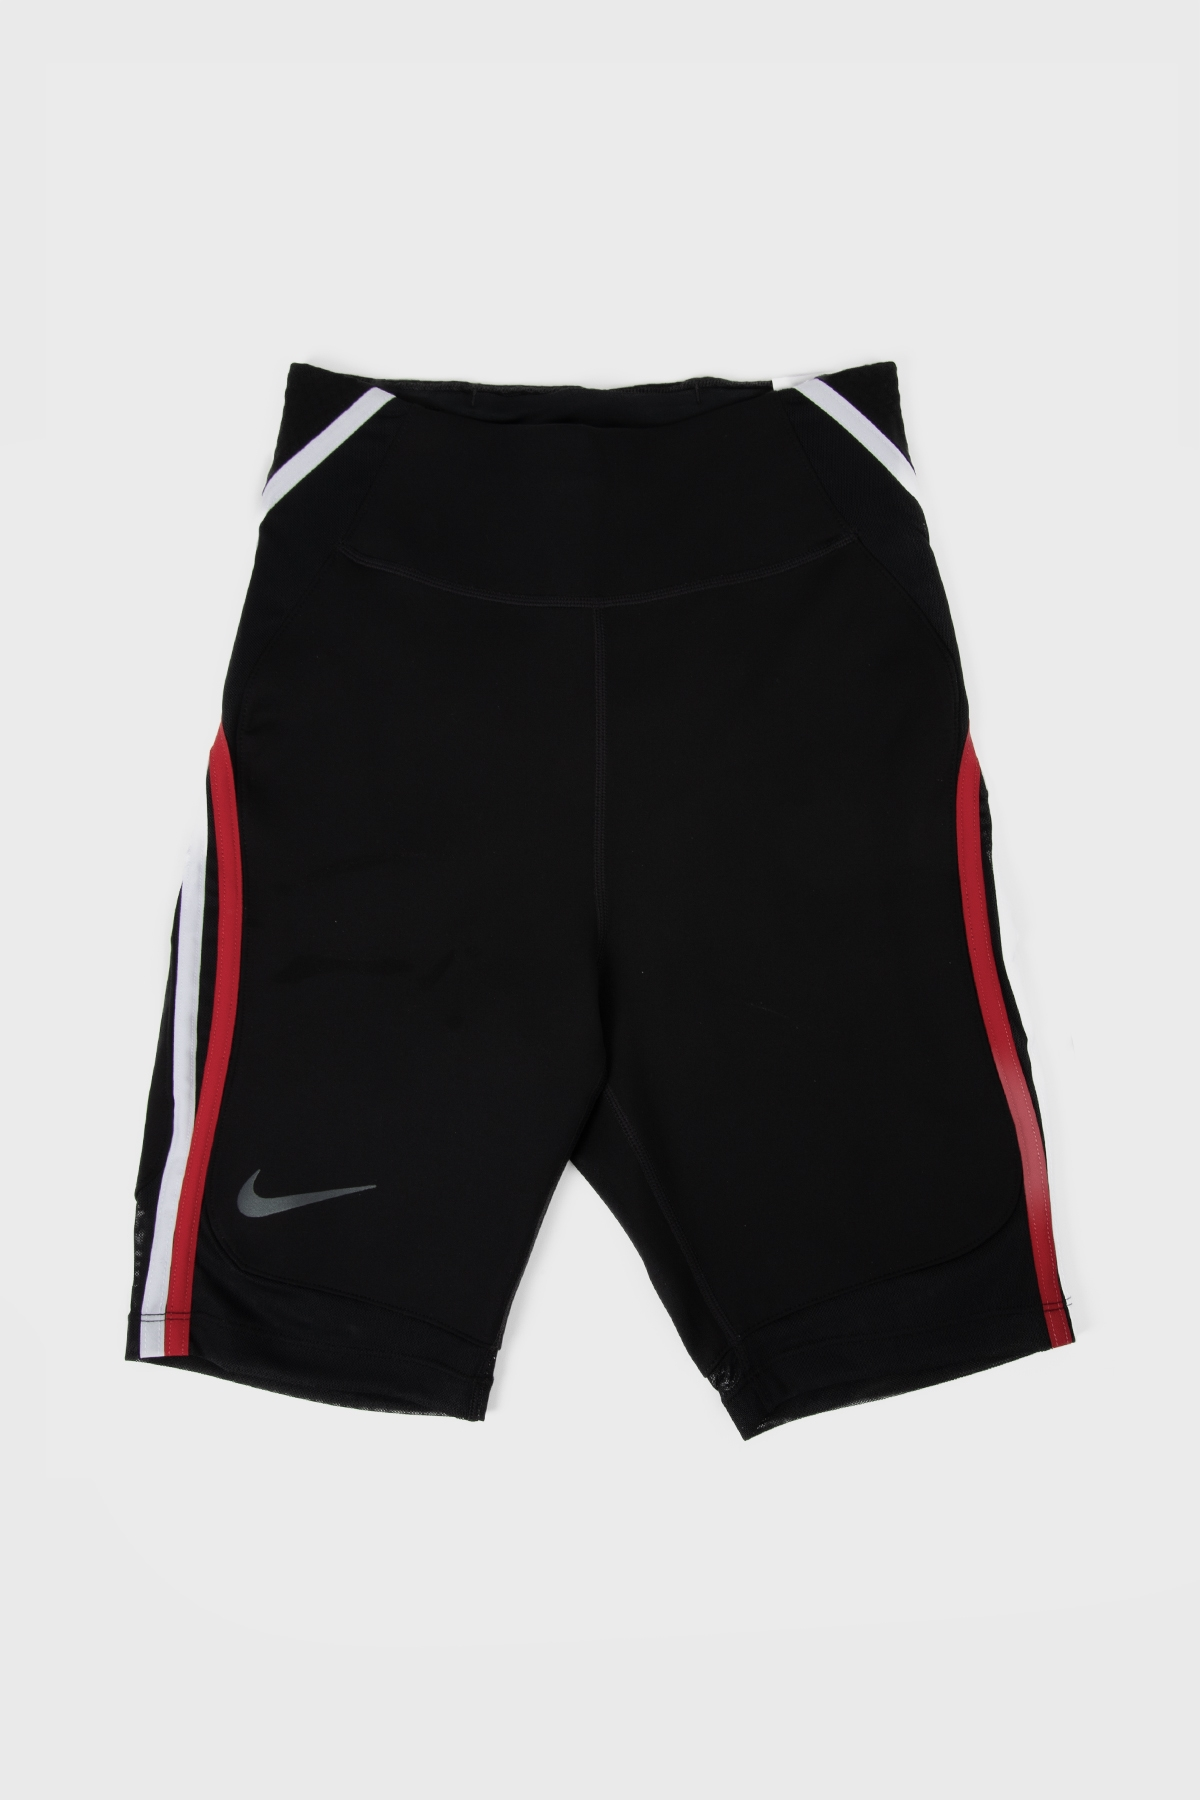 Nike W - Half tight city ready - Black